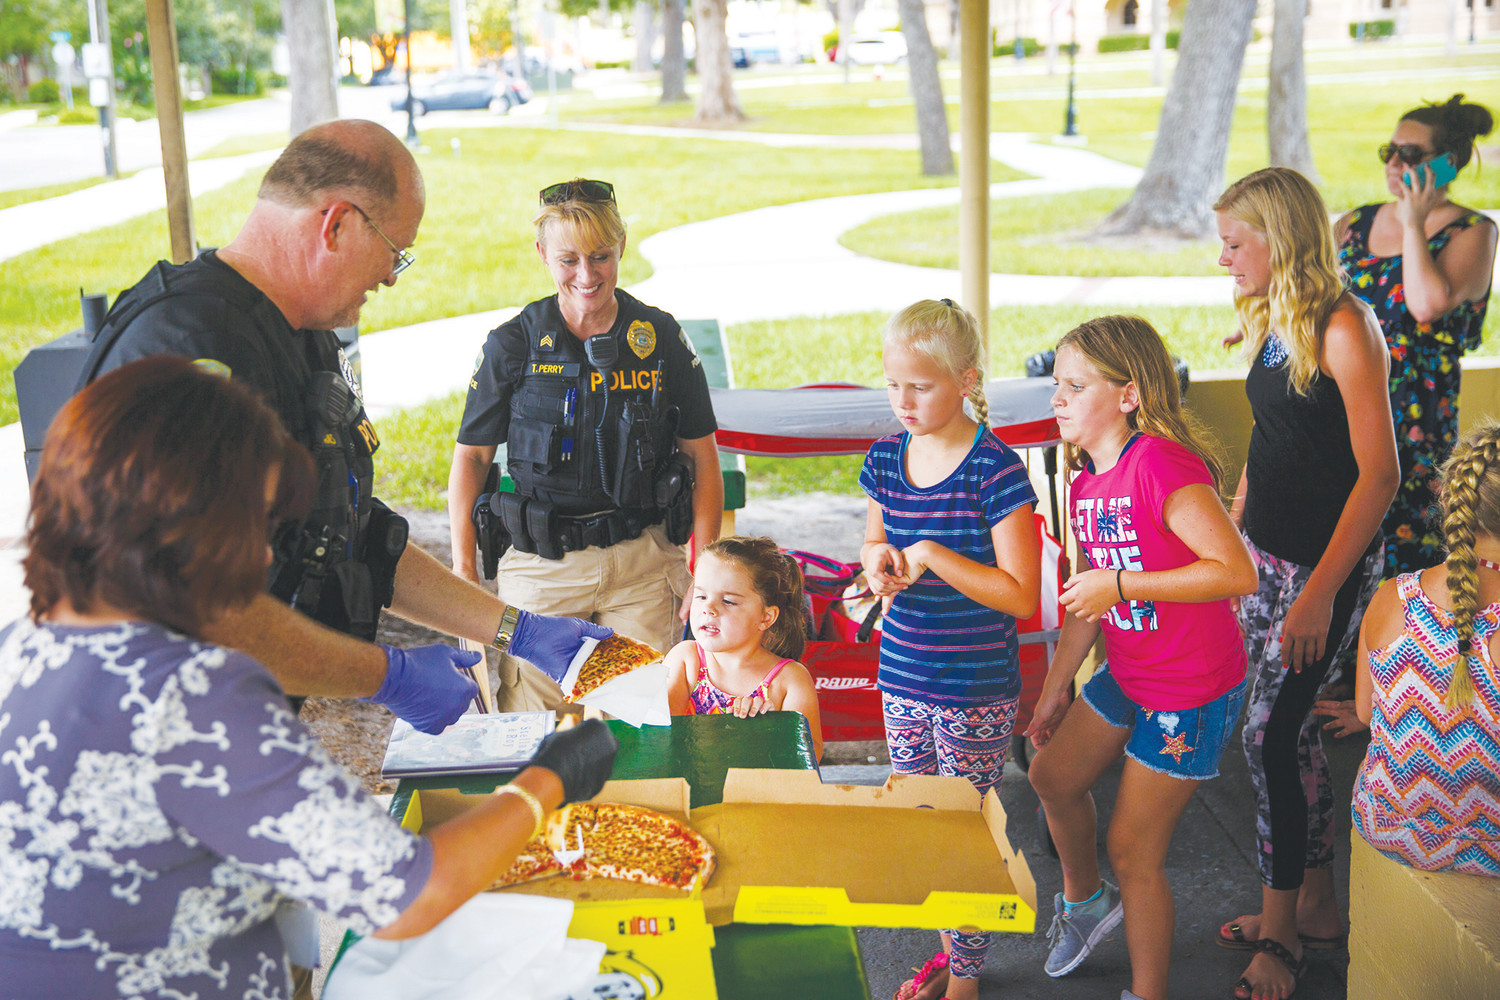 Photo by KILE BREWER